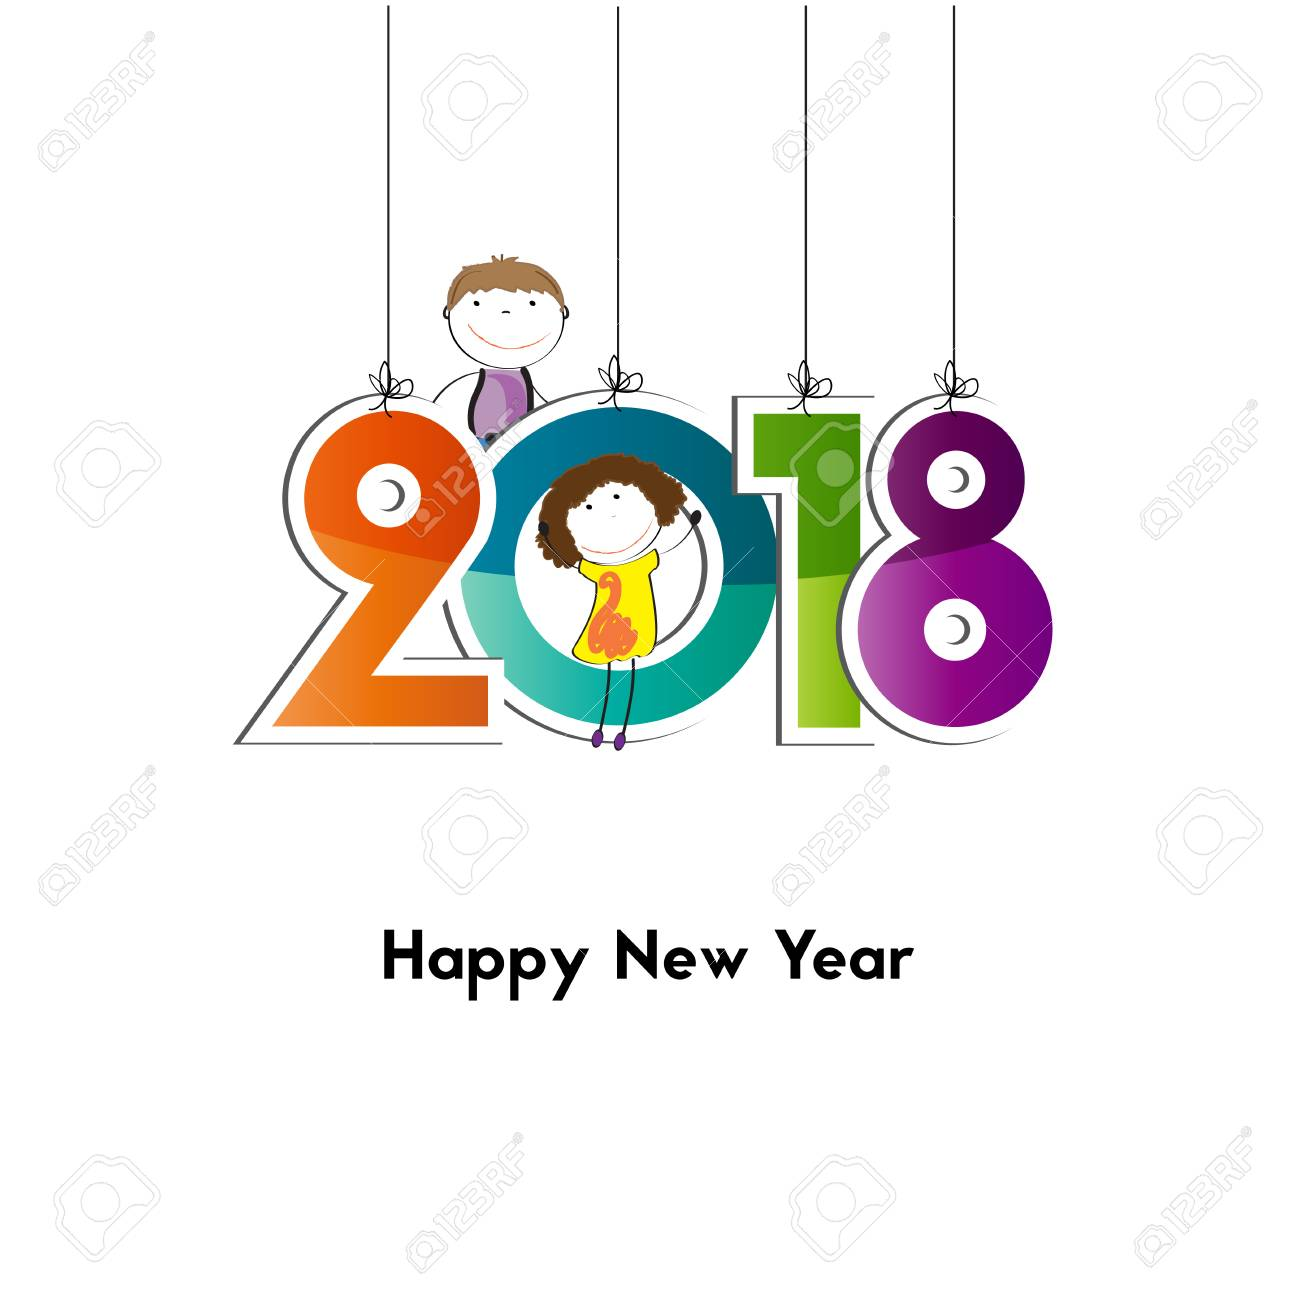 happy new year 2018 background or element of a holidays card stock vector 81565525